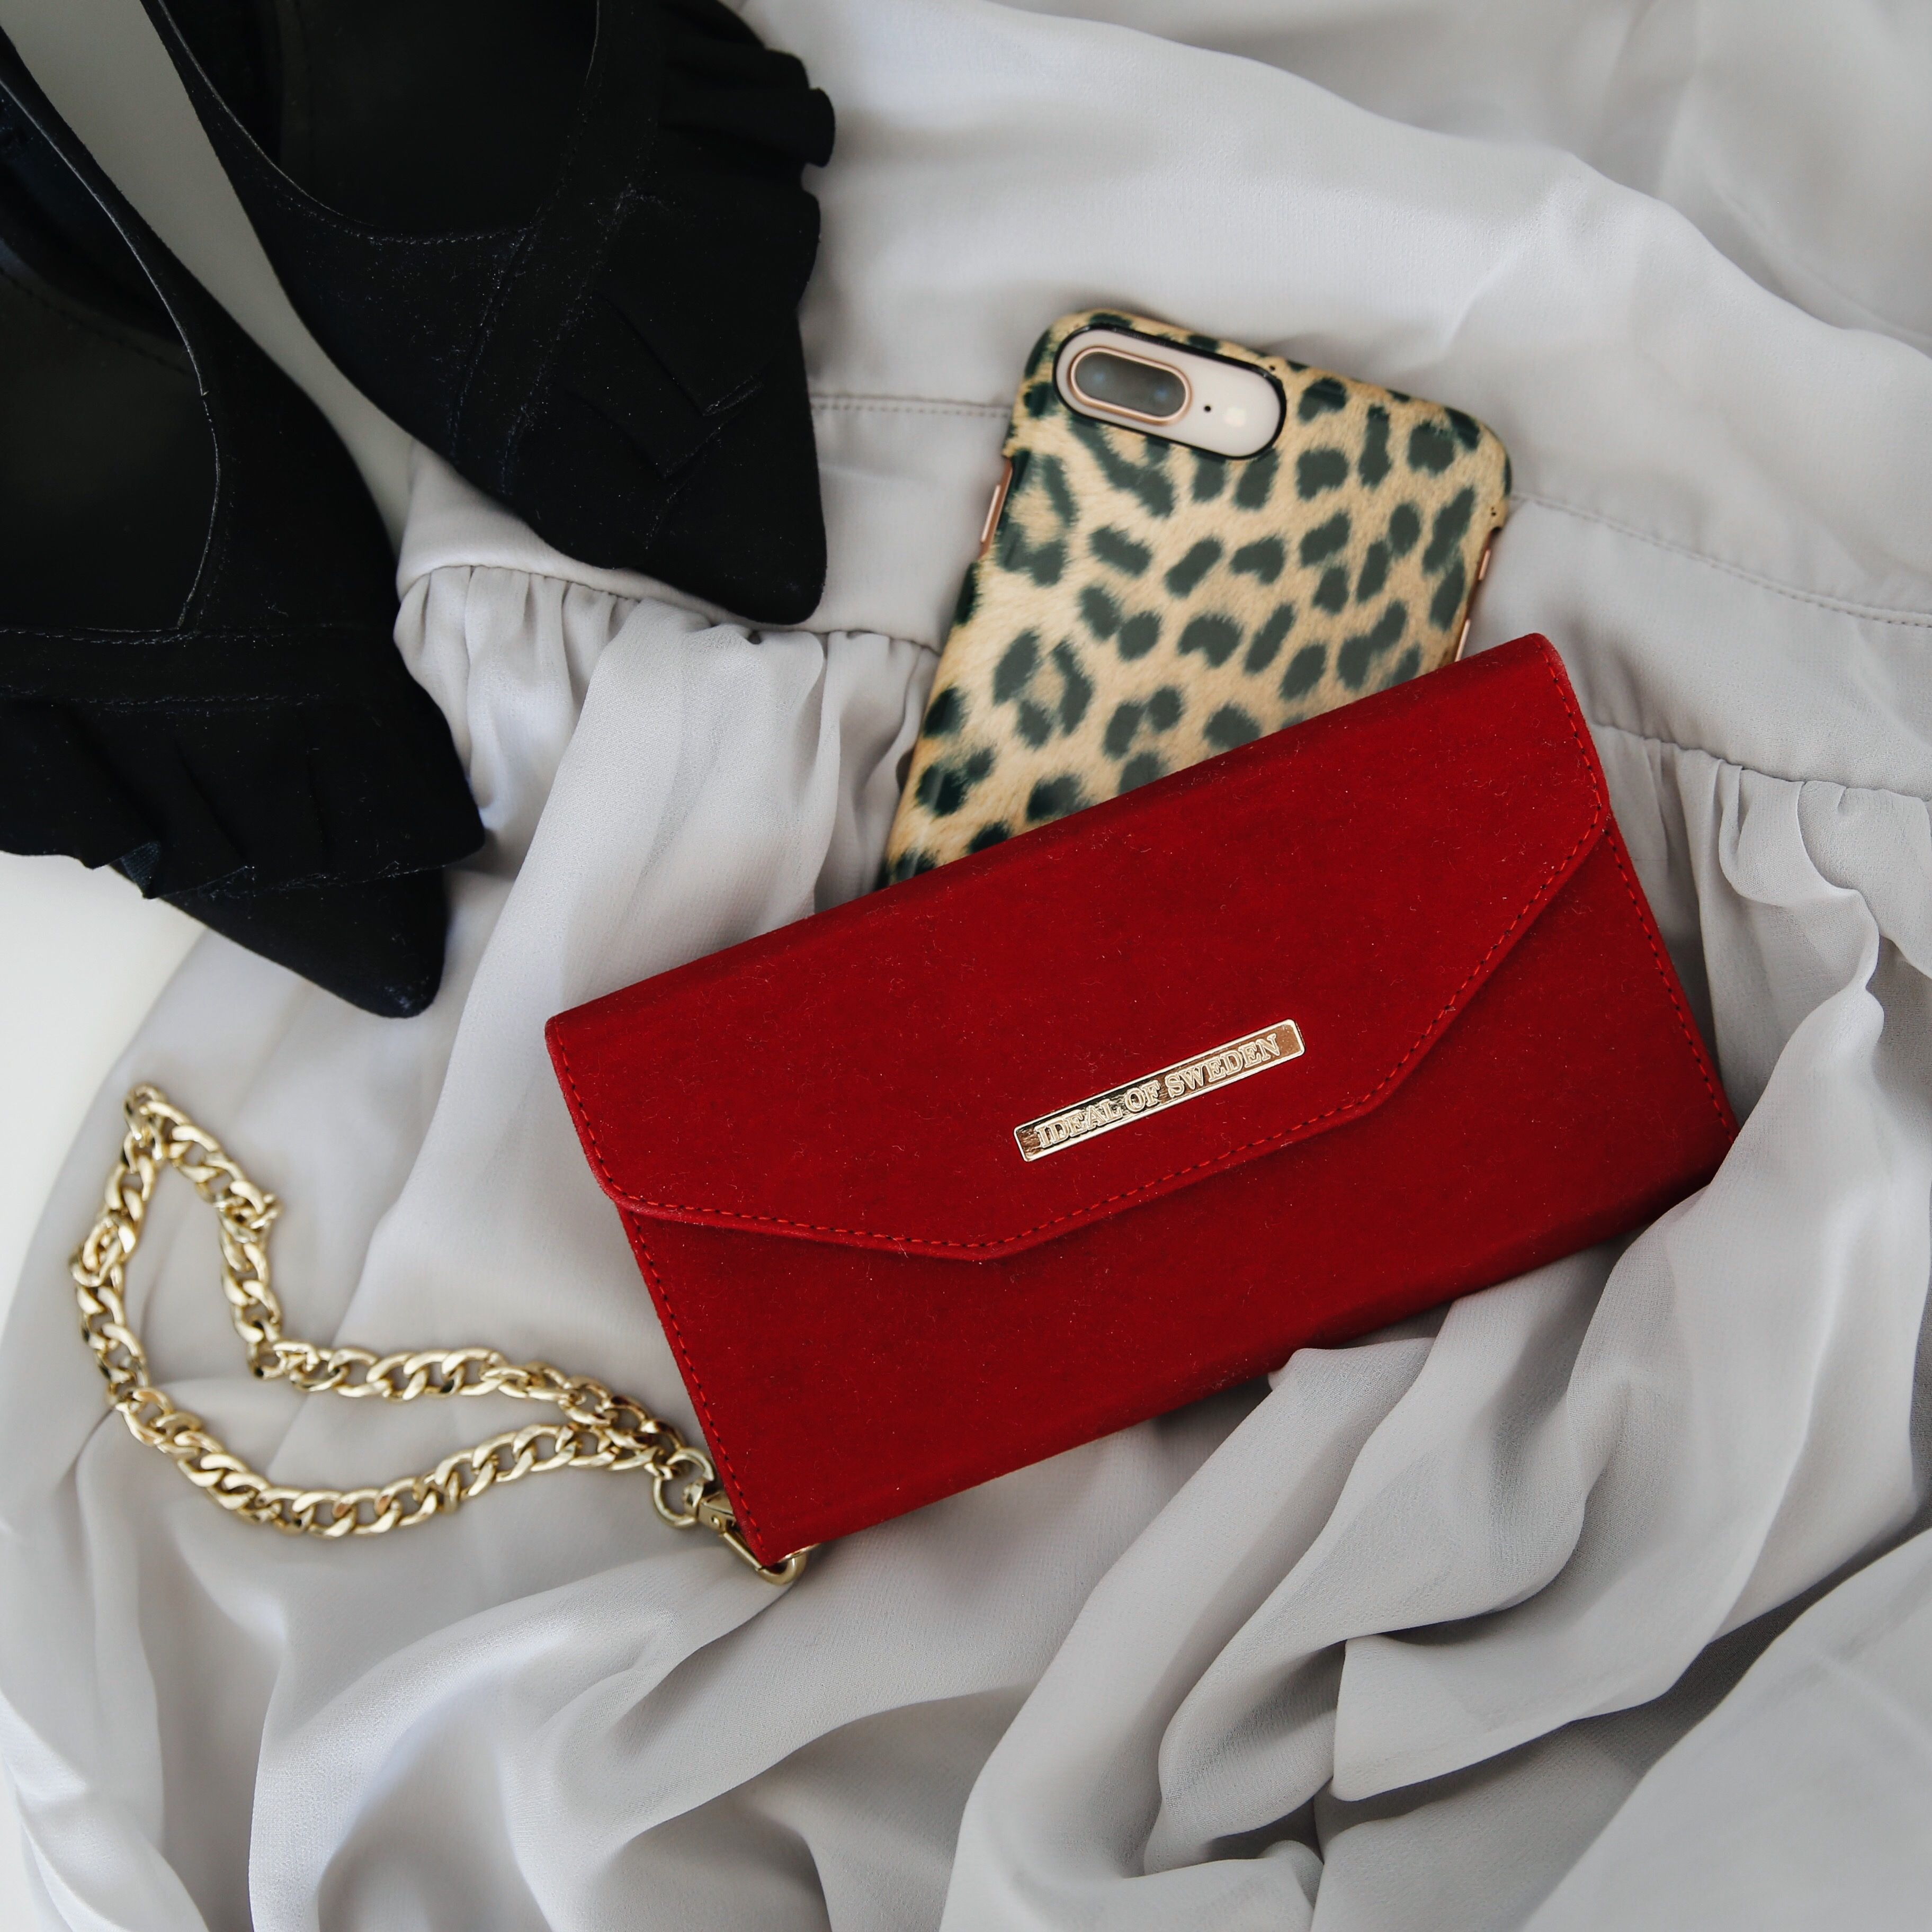 Mayfair Clutch Velvet red  idealofsweden  mayfairclutchvelvetred  fashion   inspo  luxury  iphone  spring  summer  shoes  details  phonecase   animalprint 74b049565327f